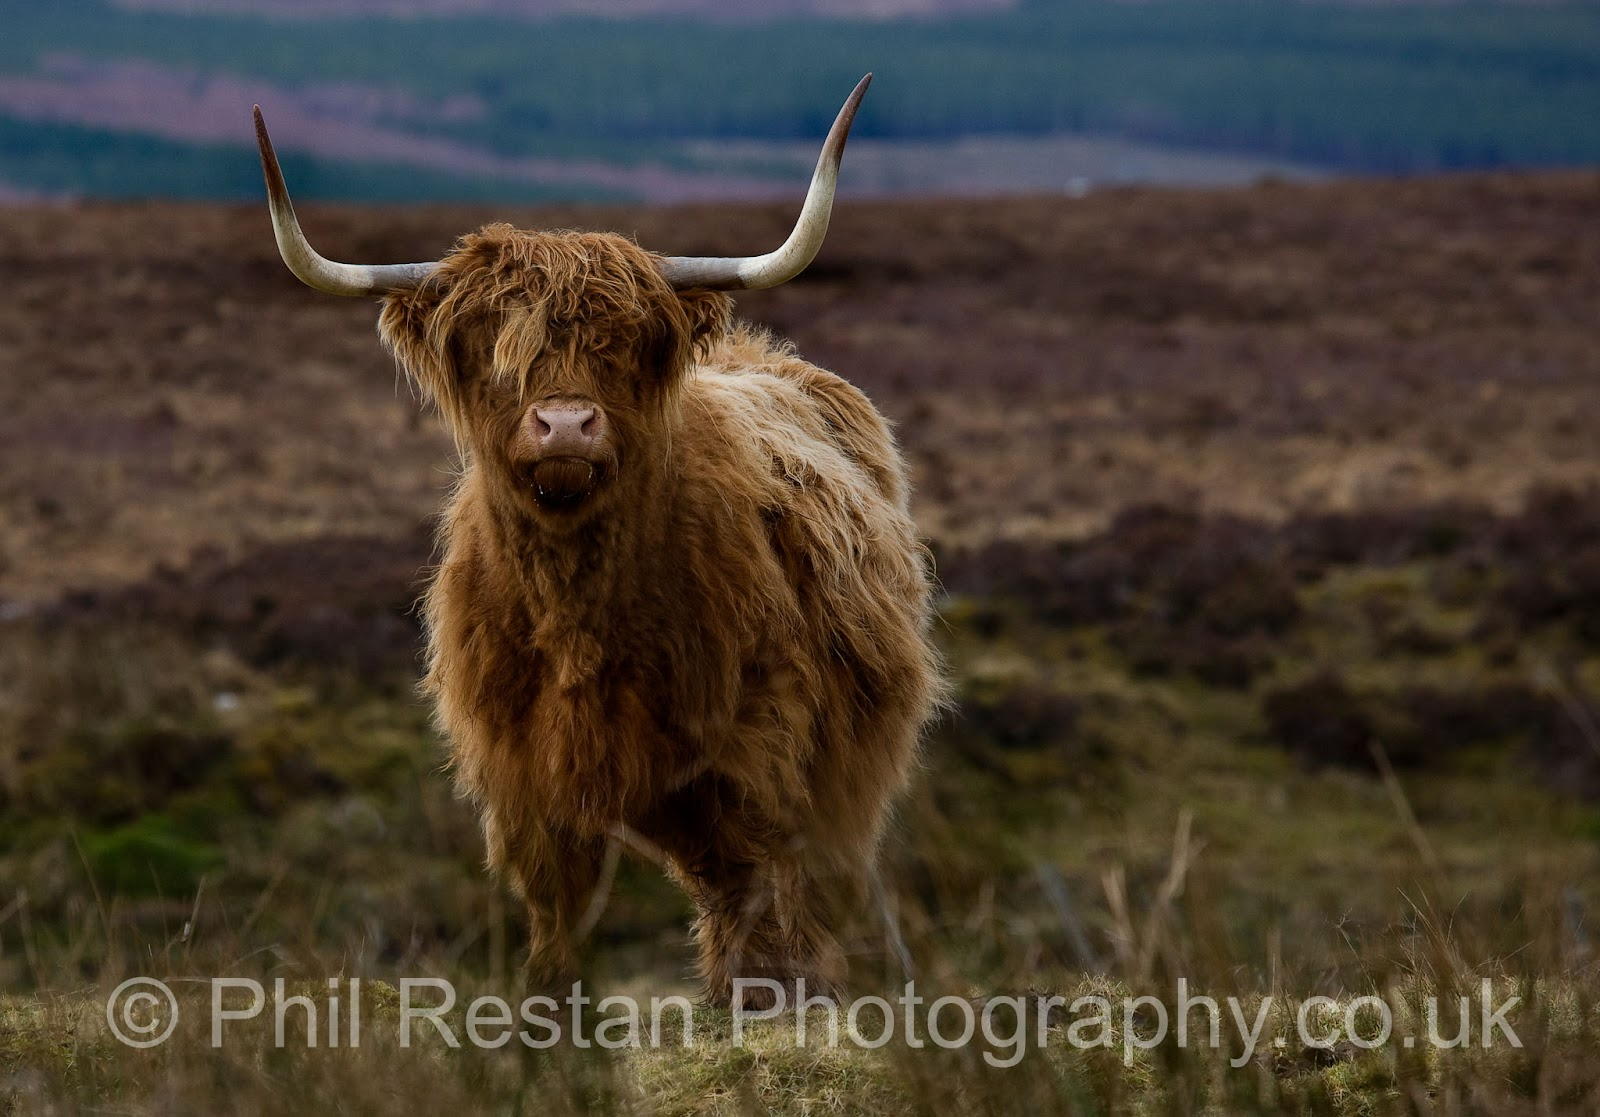 Photo of a Highland cow from Lairg in Sutherland, Scottish Highlands